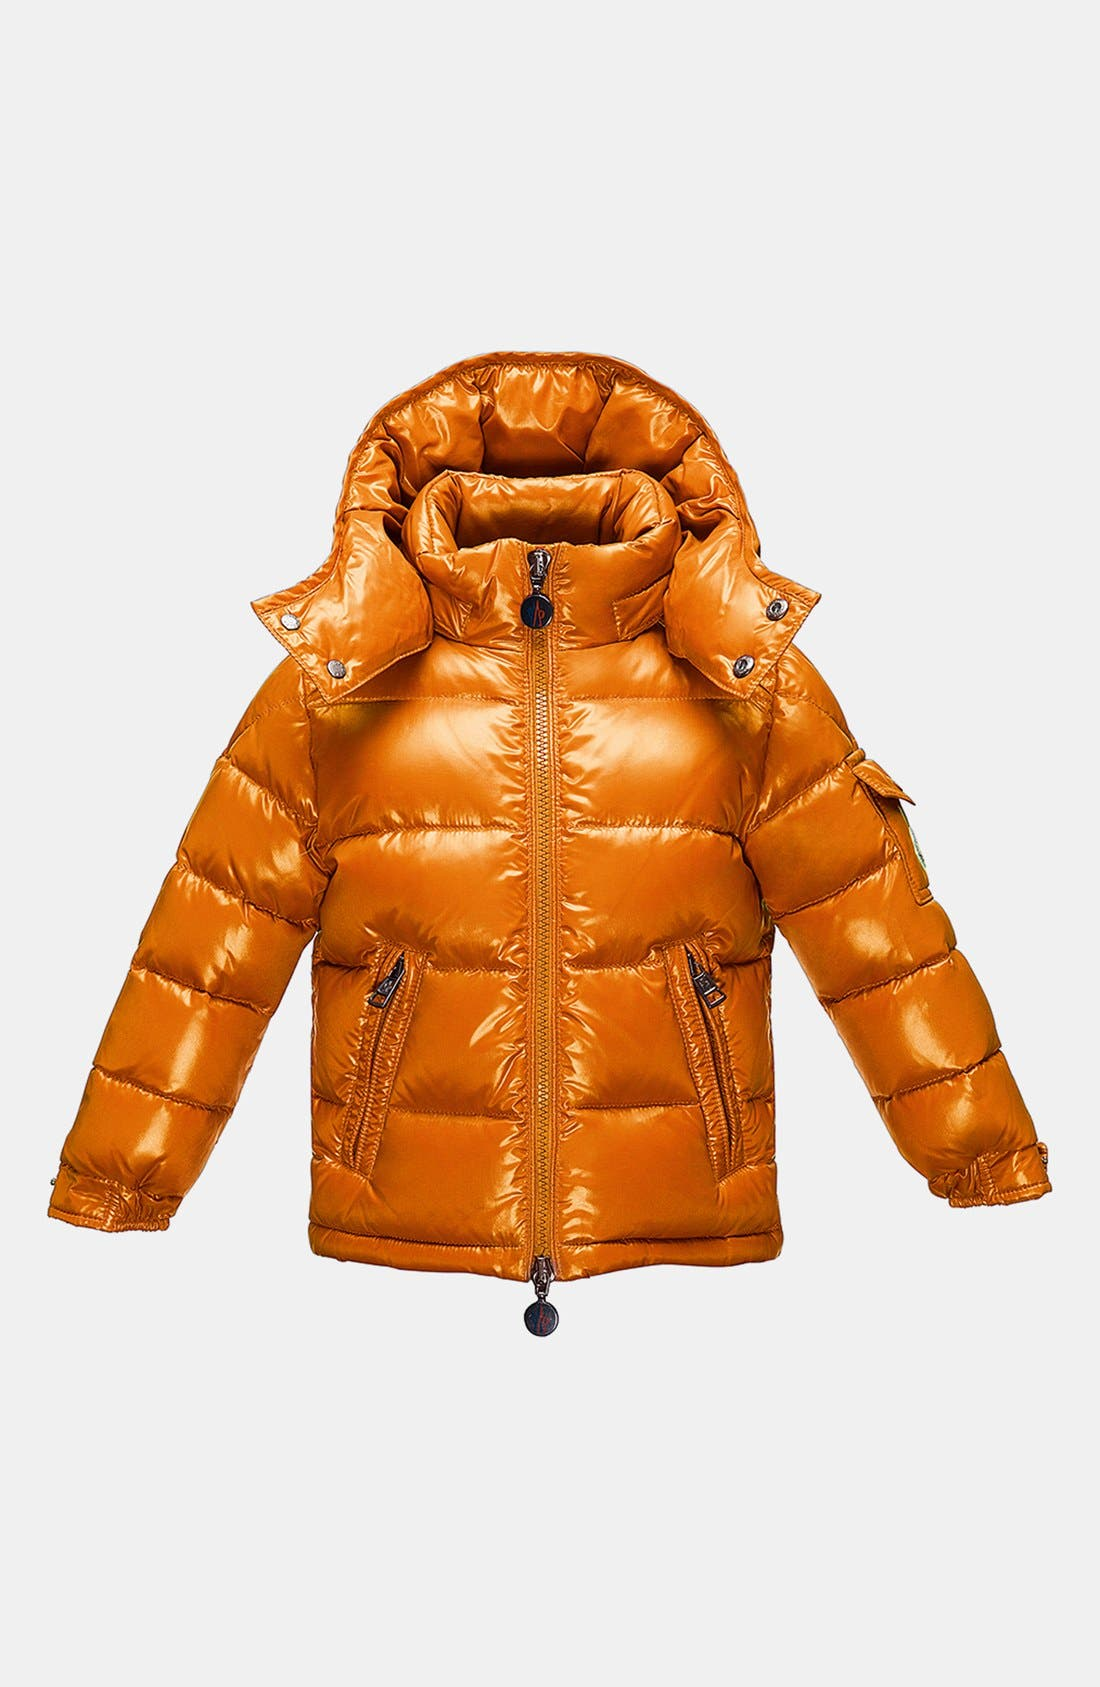 Alternate Image 1 Selected - Moncler 'Maya' Hooded Down Jacket (Little Boys & Big Boys)